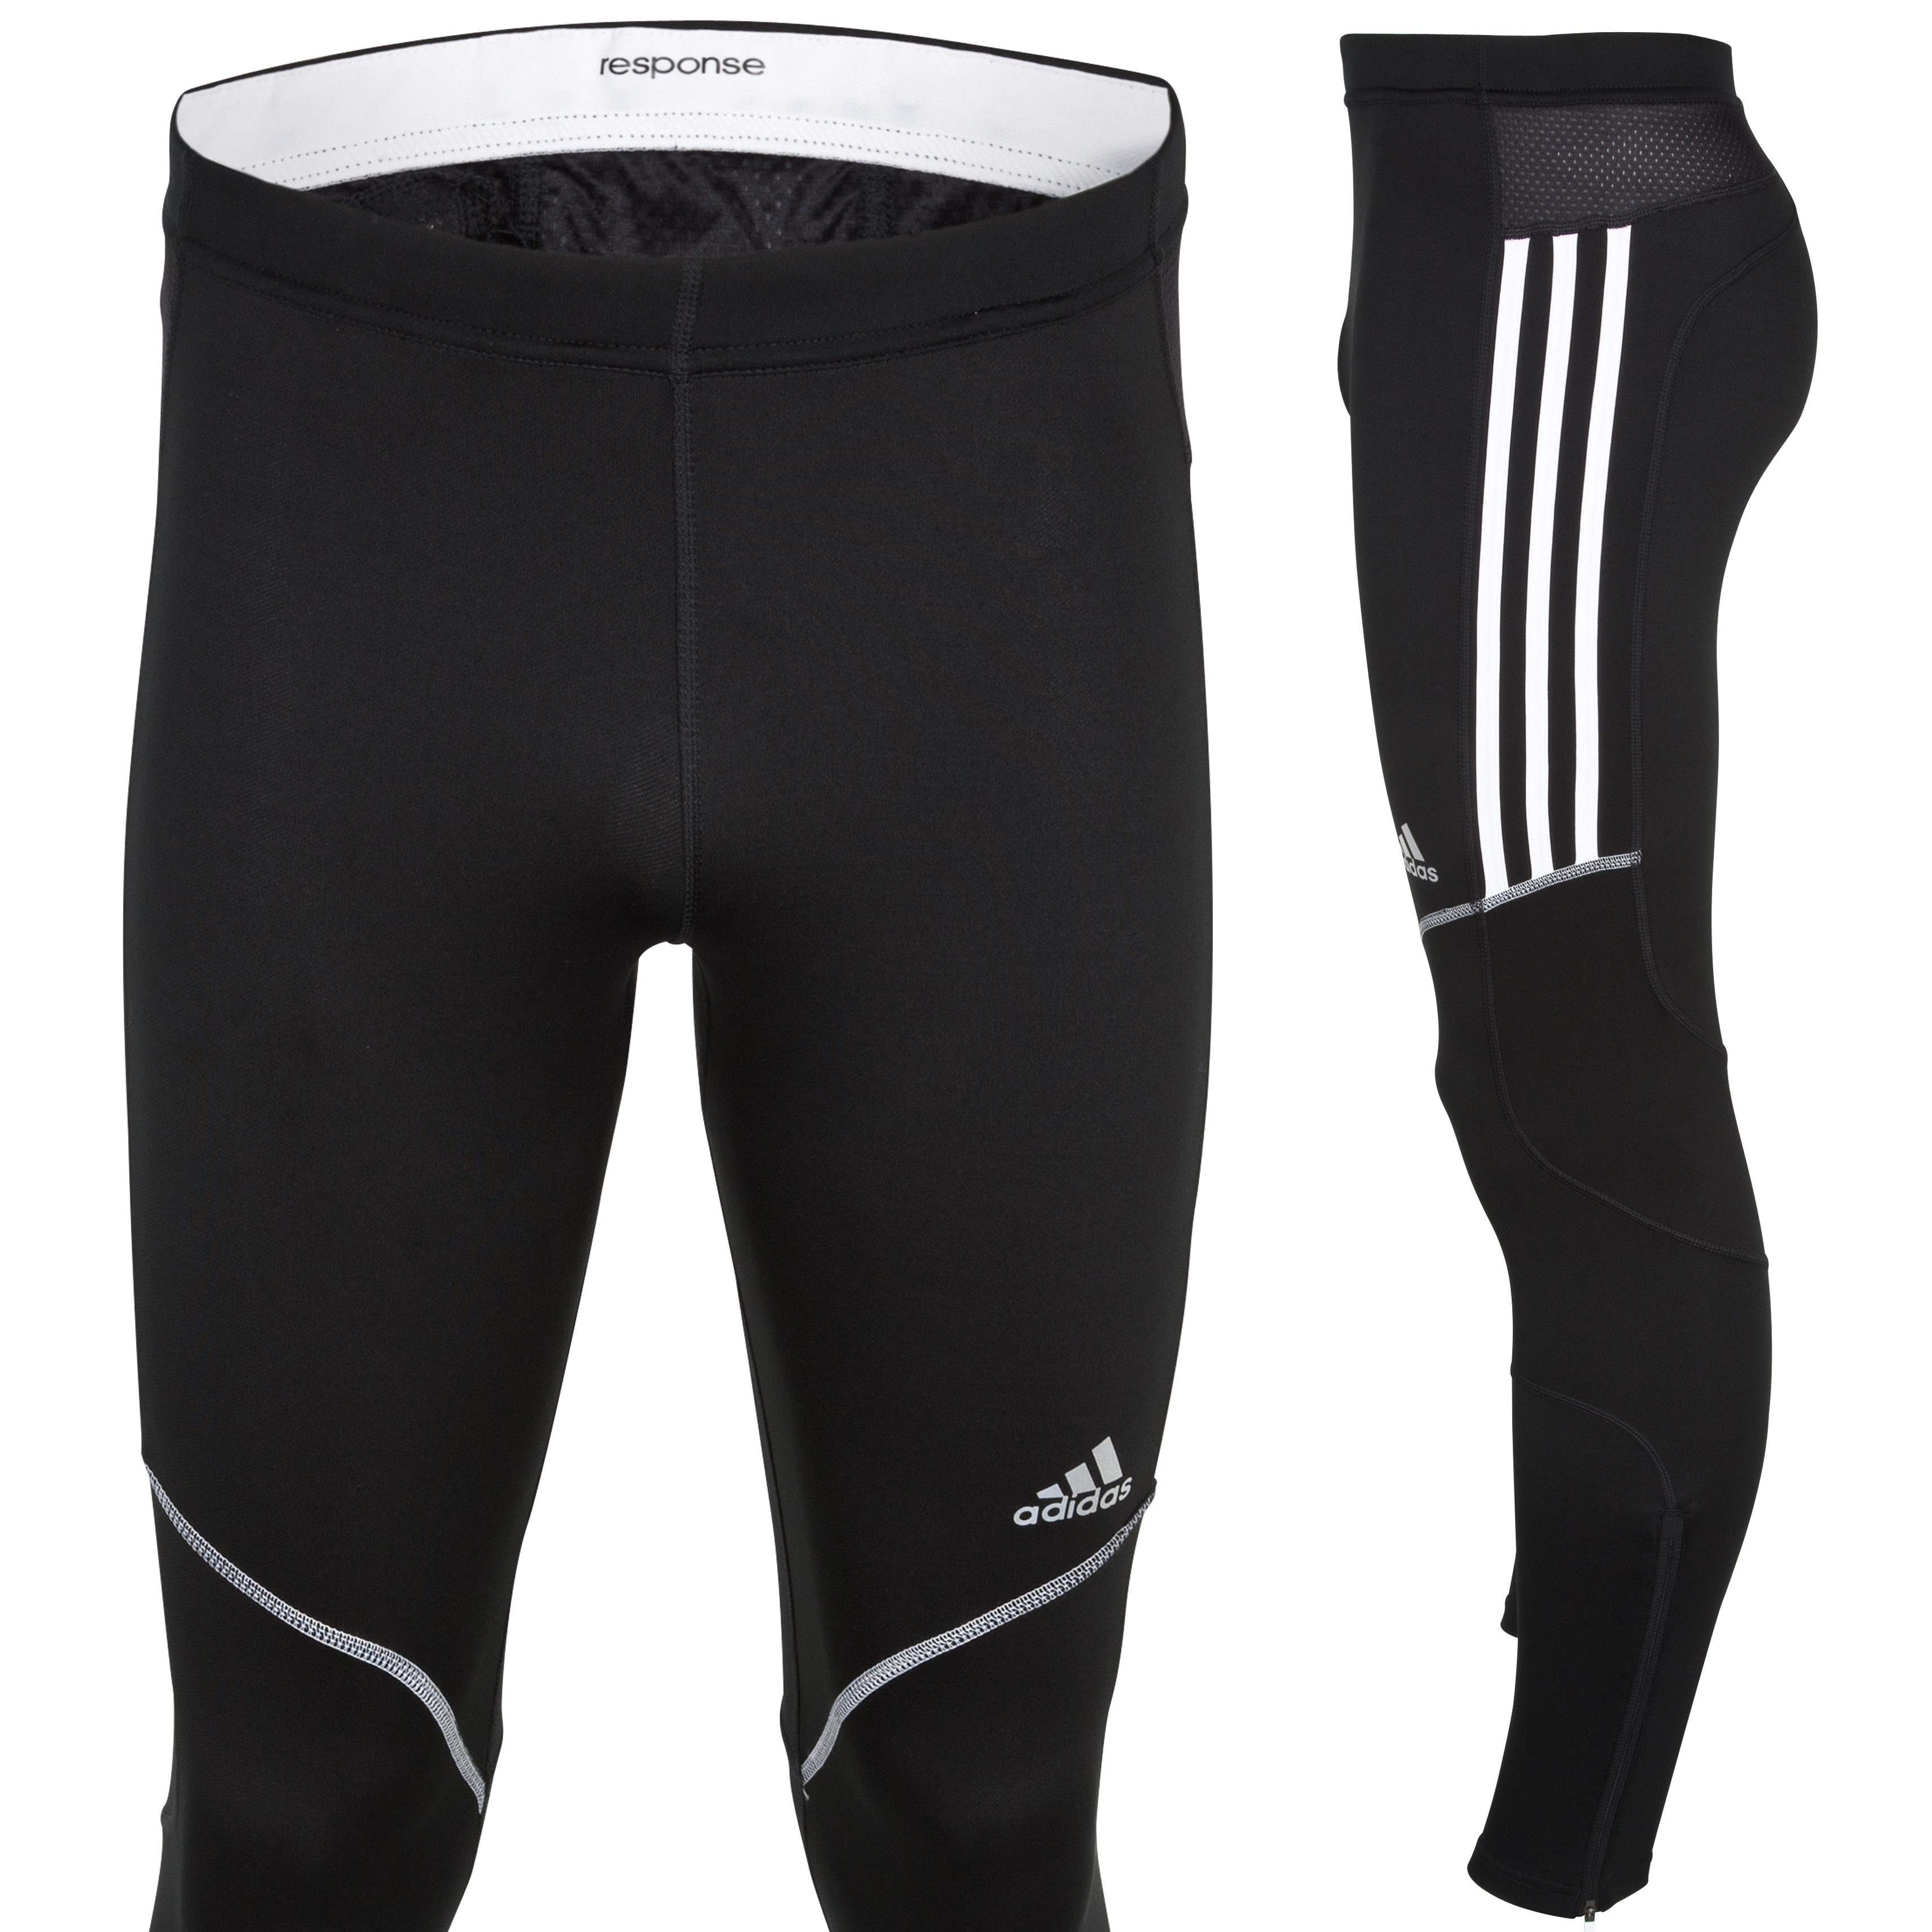 Adidas Response DS Long Tights - Black/White